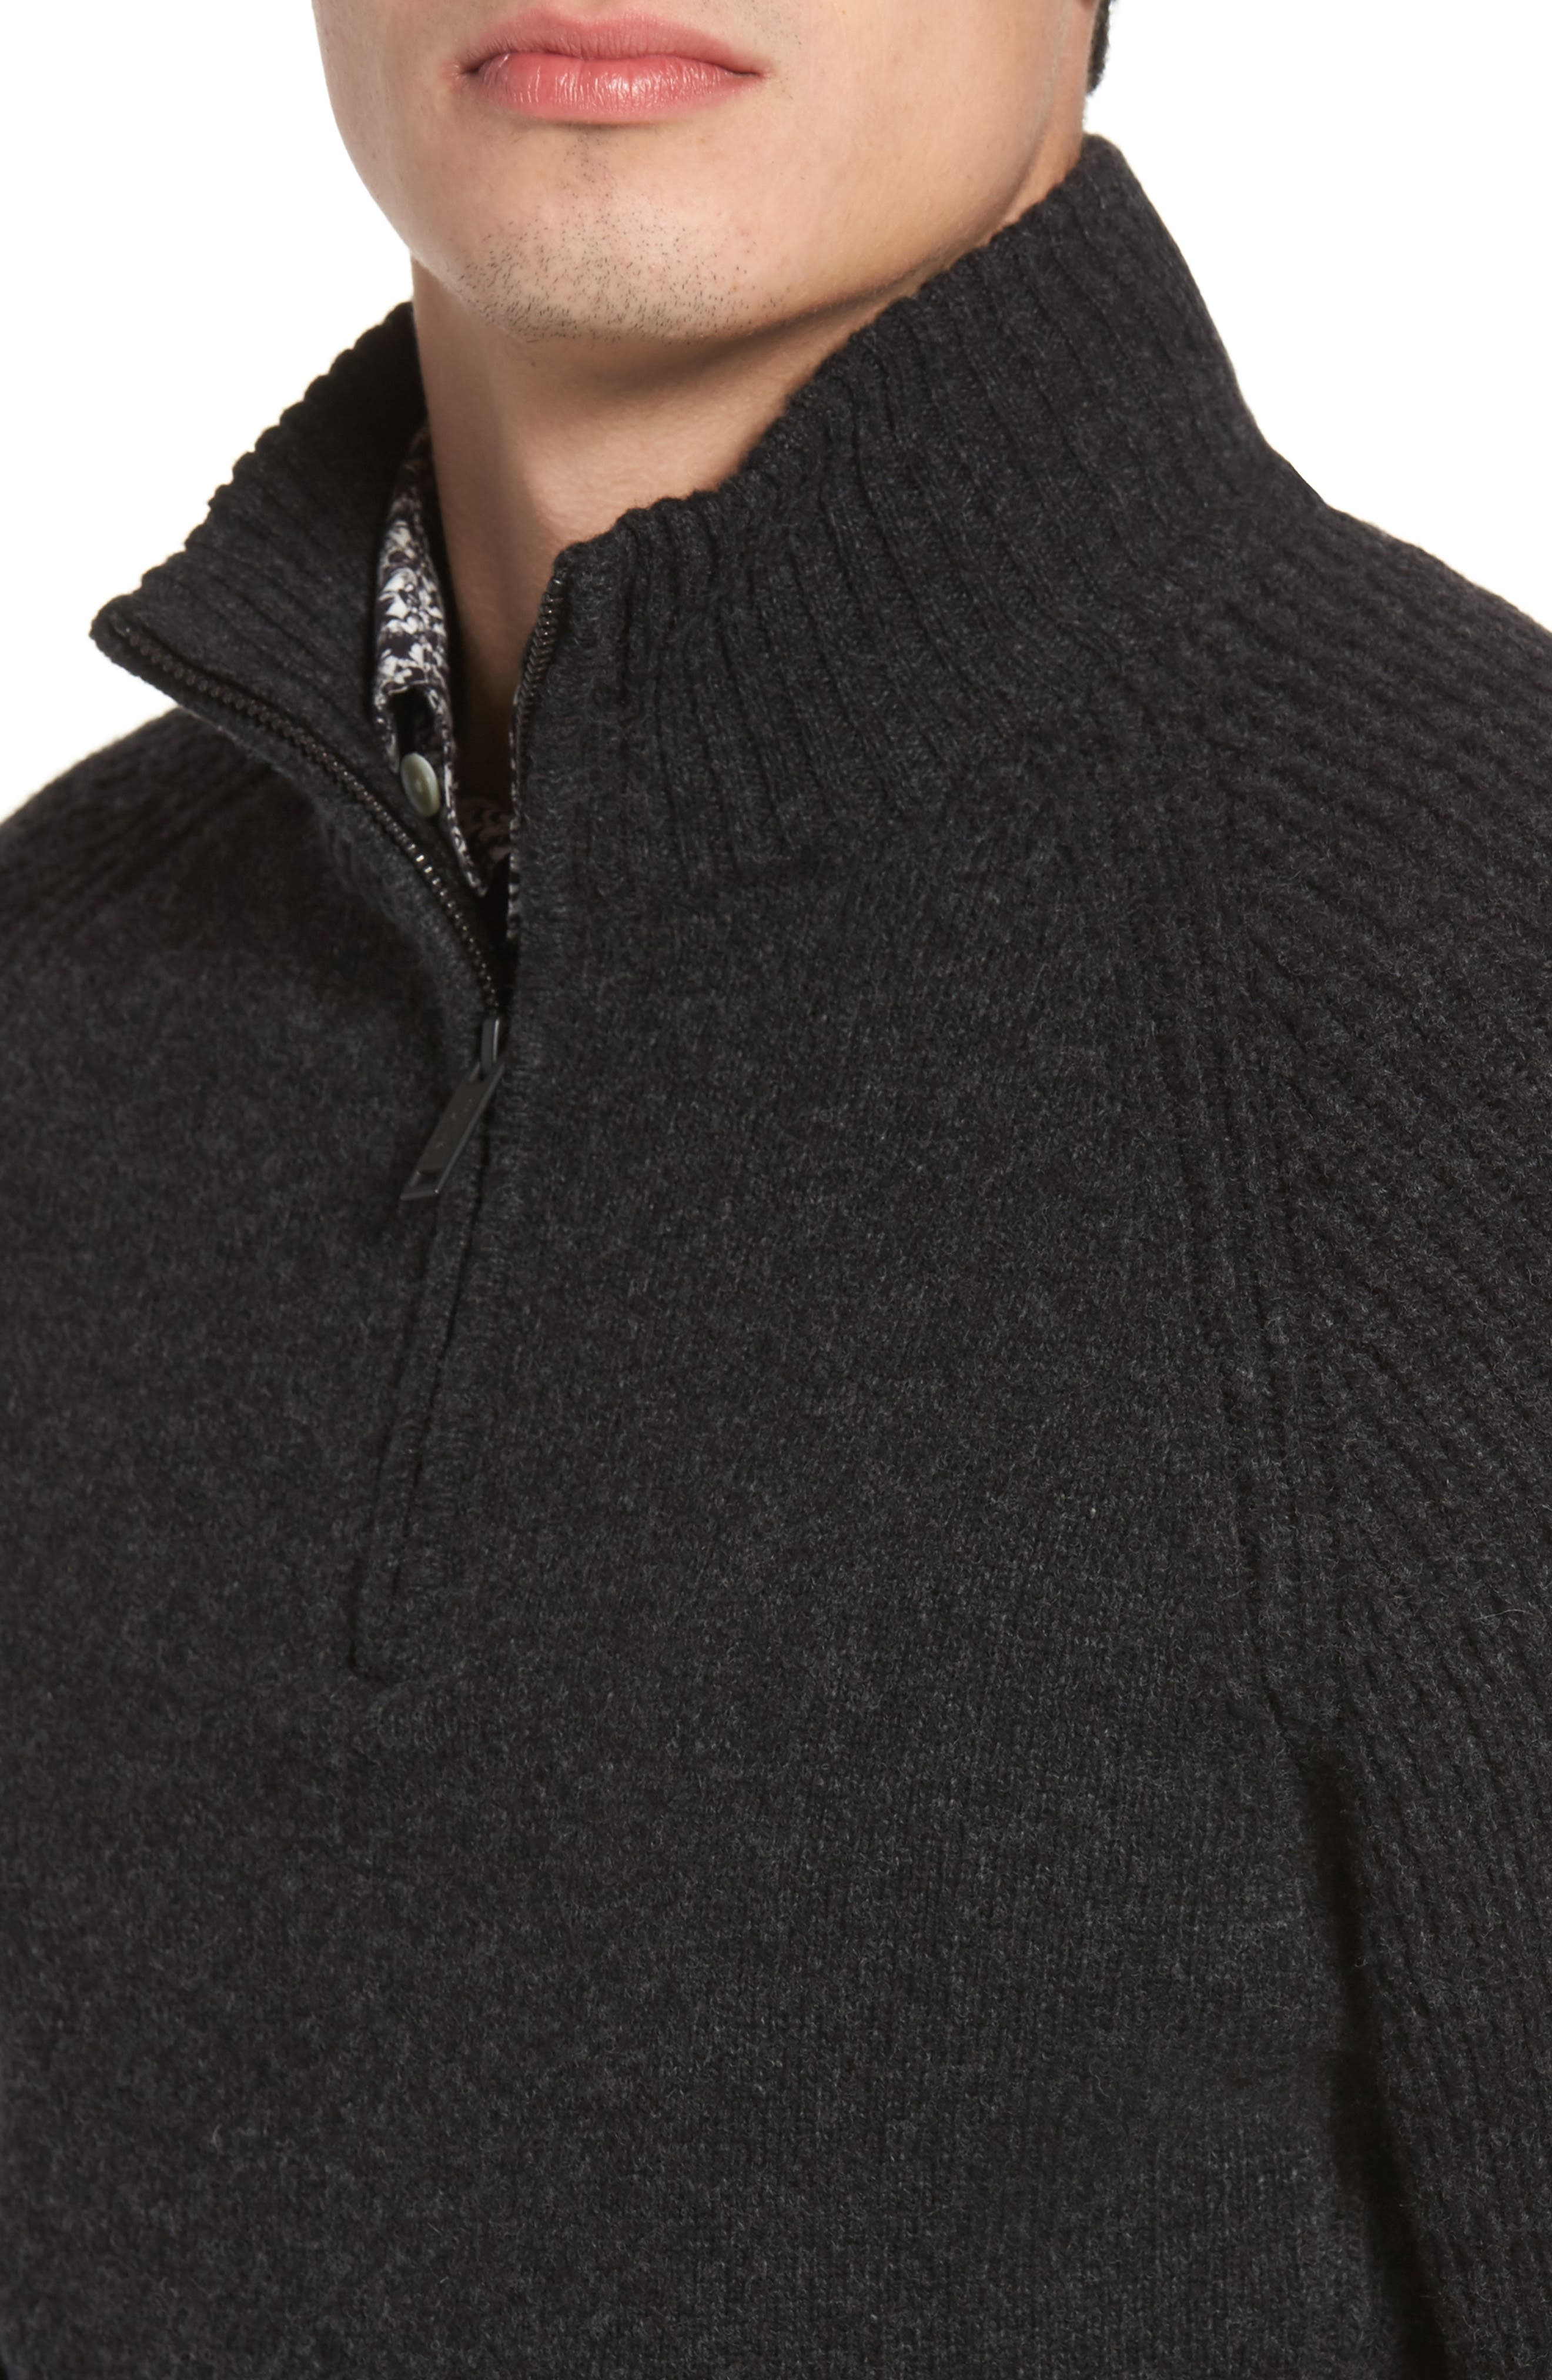 Stredwick Lambswool Sweater,                             Alternate thumbnail 4, color,                             021